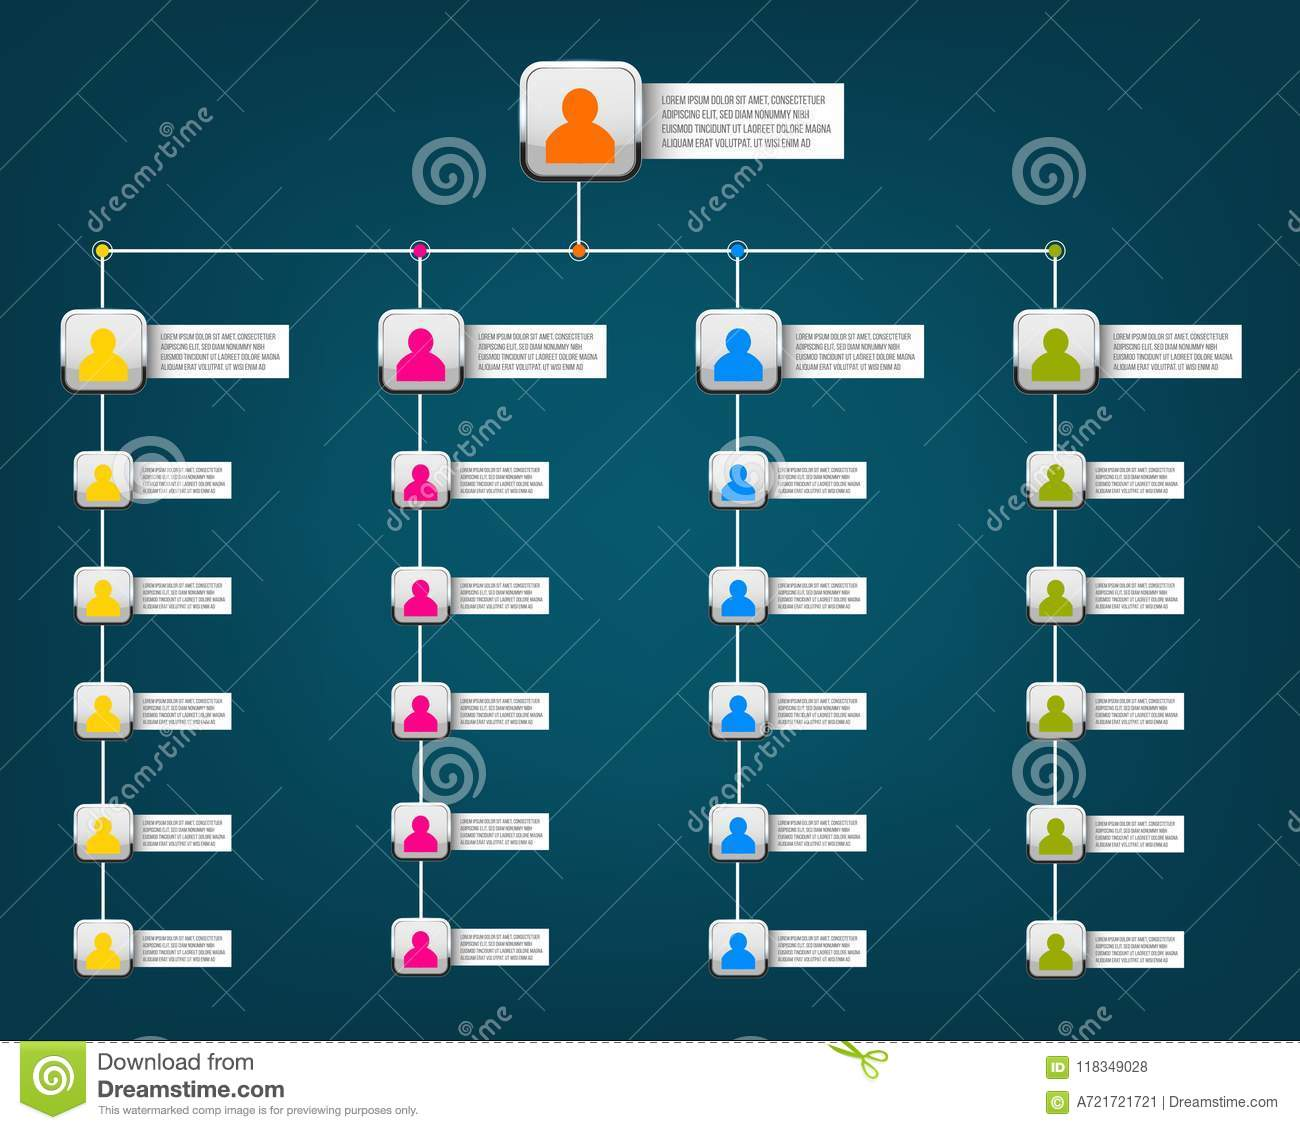 Creative vector modern style illustration corporate organizational chart slide of isolated on background. Business work flowchart